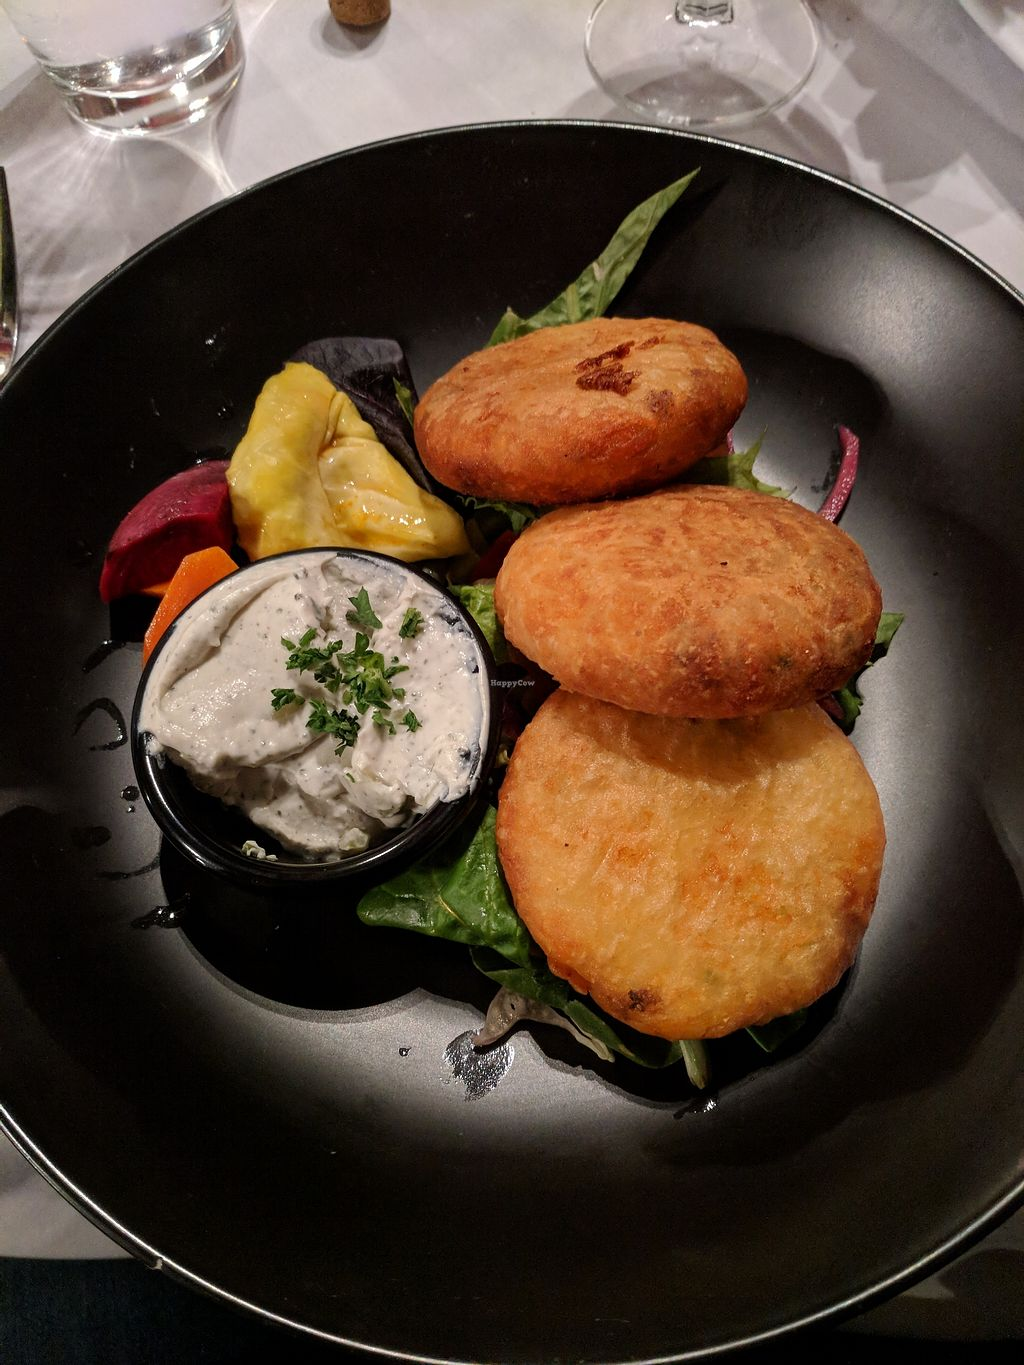 """Photo of Soro's Mediterranean Grill  by <a href=""""/members/profile/greenapplelover7"""">greenapplelover7</a> <br/>Potato chop appetizer <br/> March 2, 2018  - <a href='/contact/abuse/image/113456/365645'>Report</a>"""